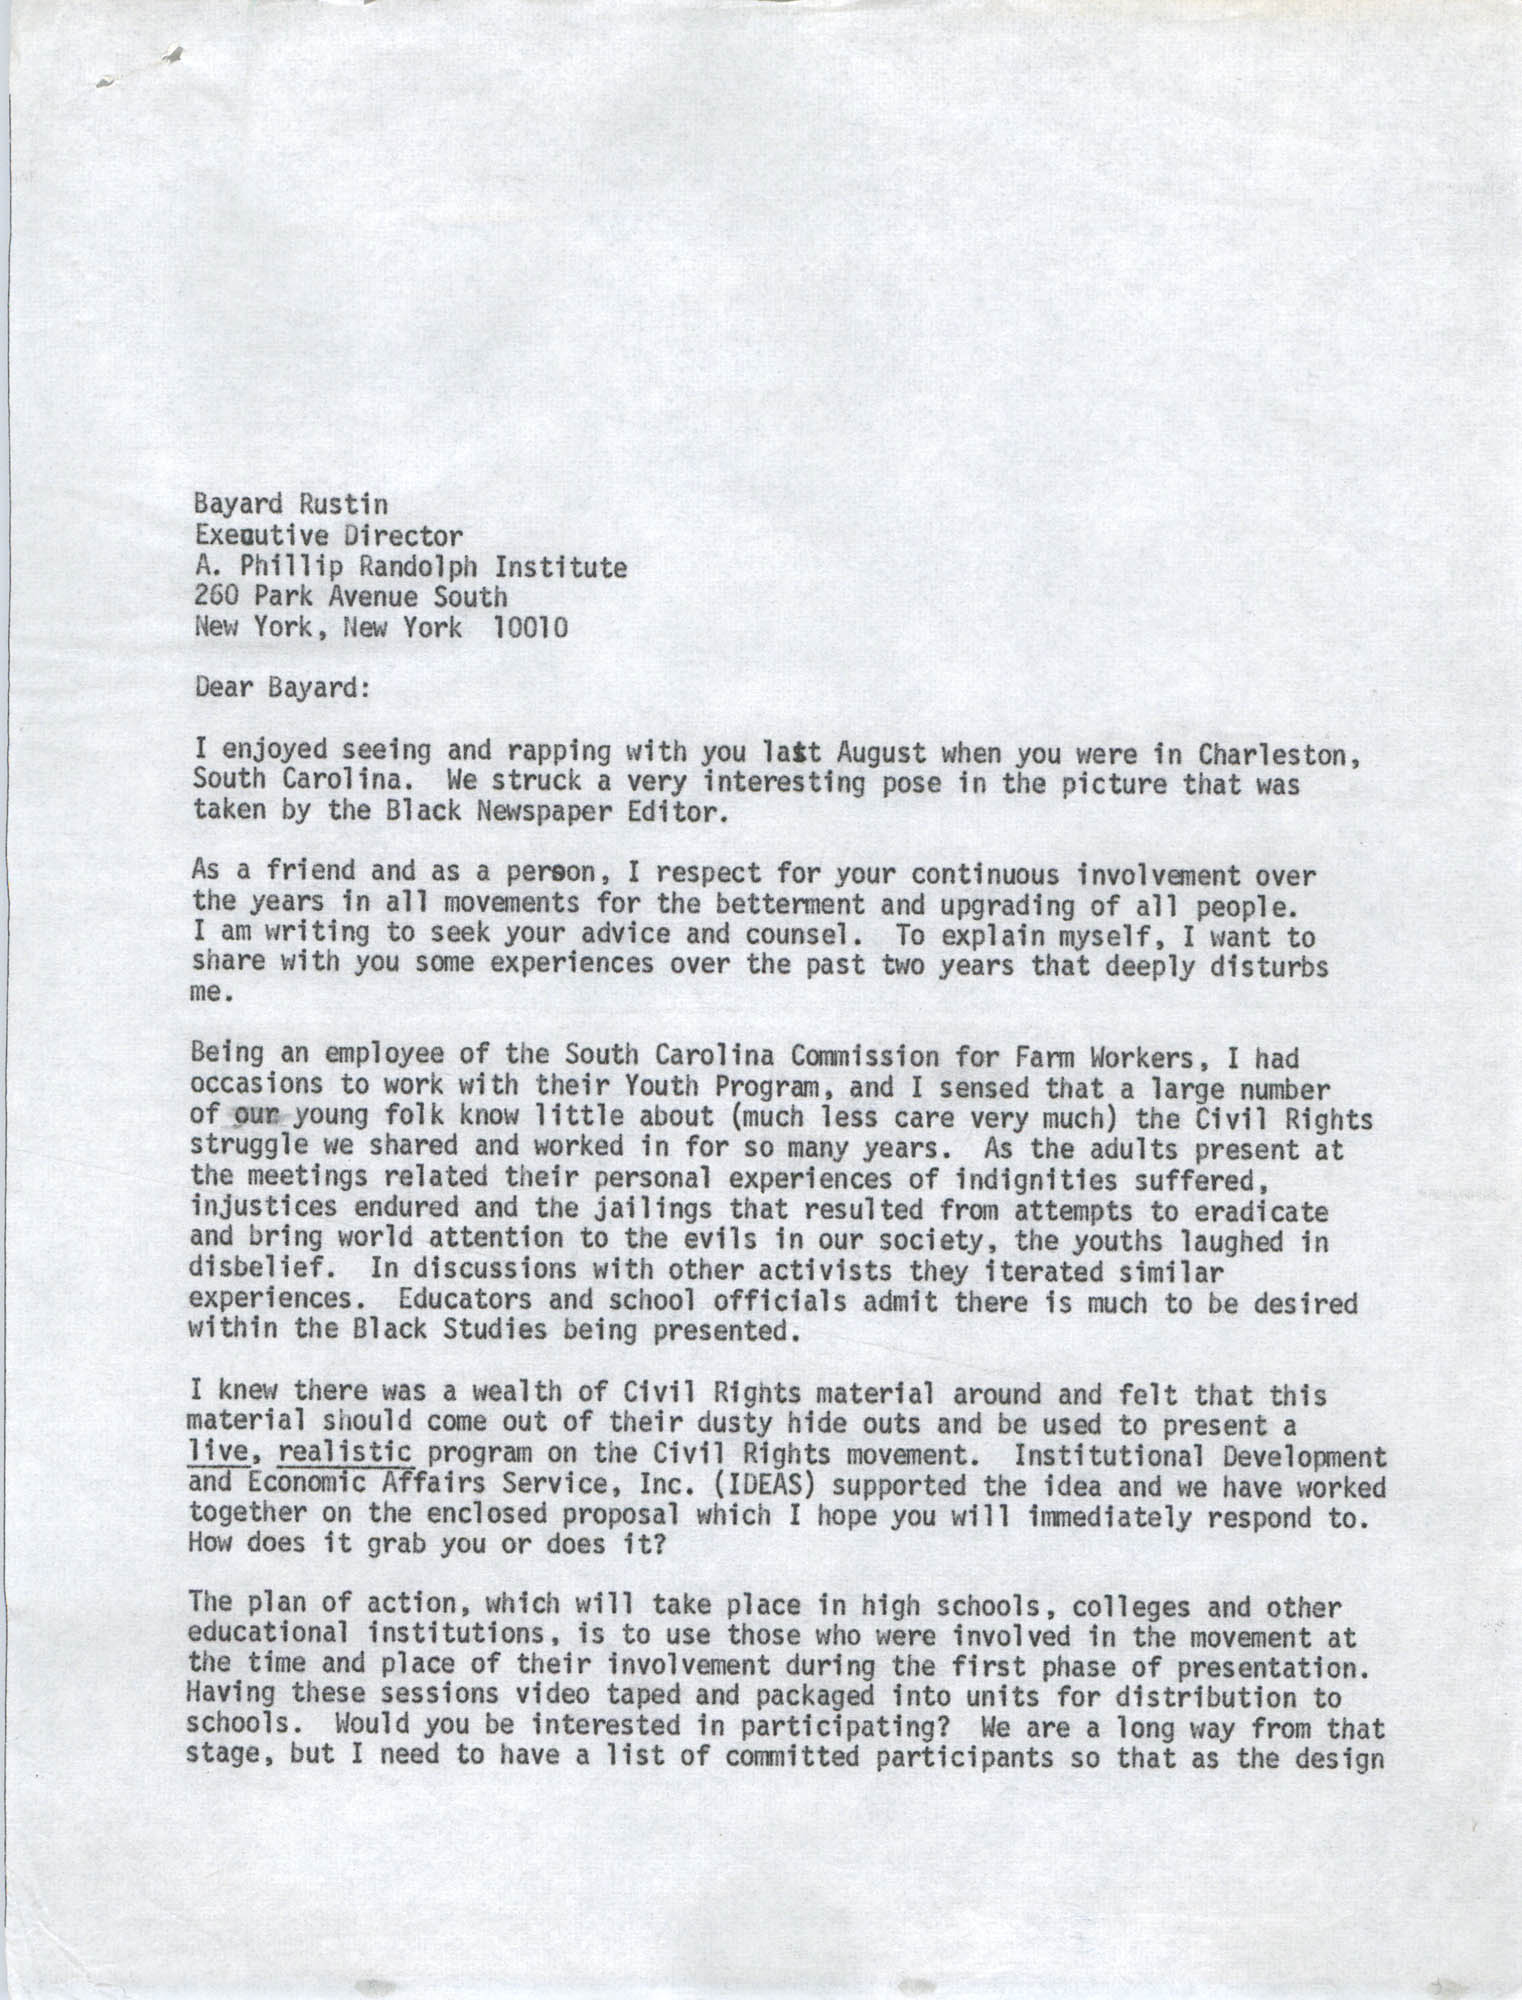 Letter from Bernice Robinson to Bayard Rustin, May 8, 1973, Draft Page 1